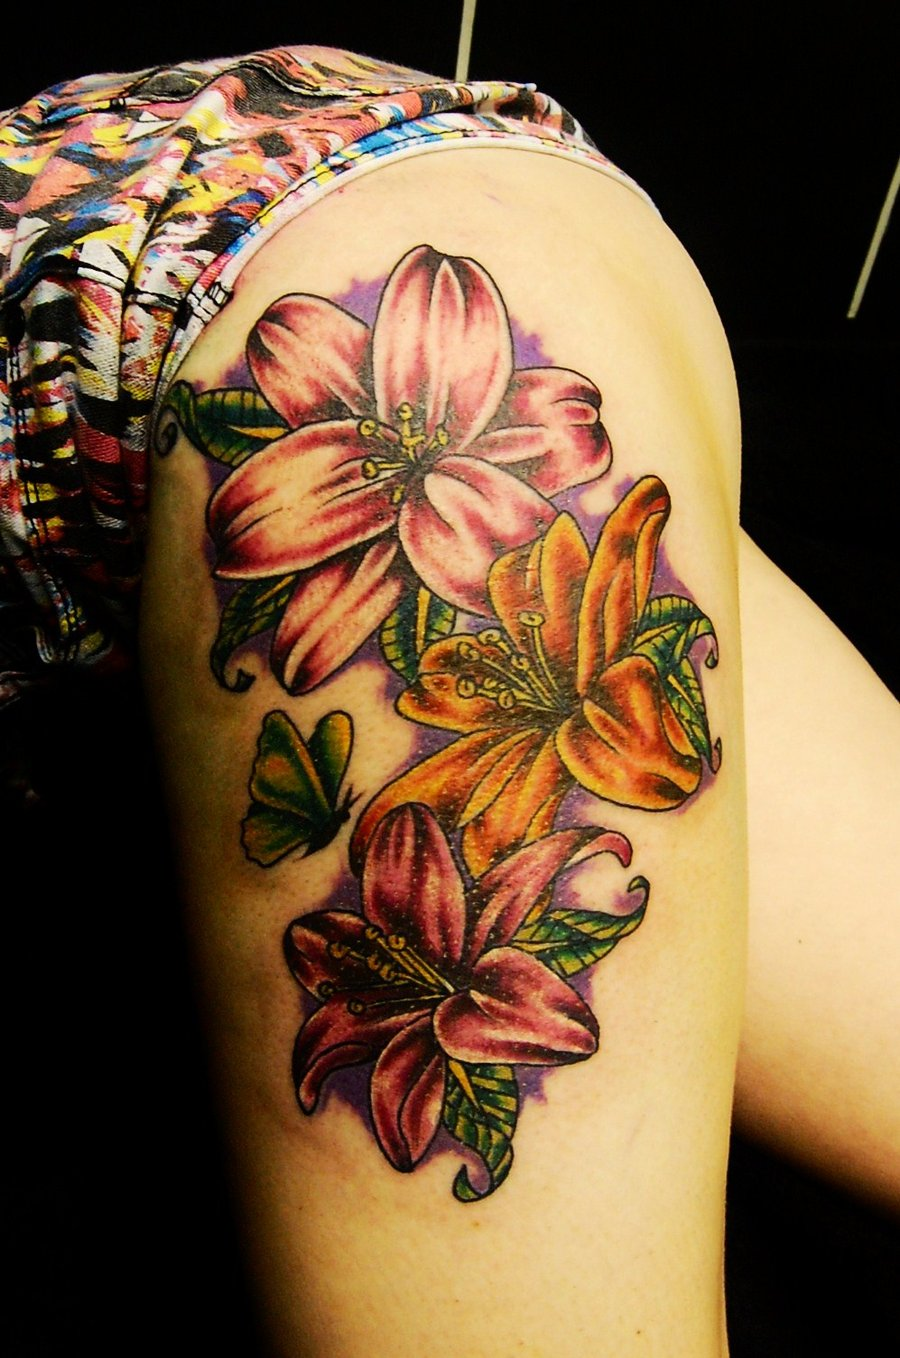 Lily Tattoos Designs Ideas And Meaning Tattoos For You Ideas And Designs